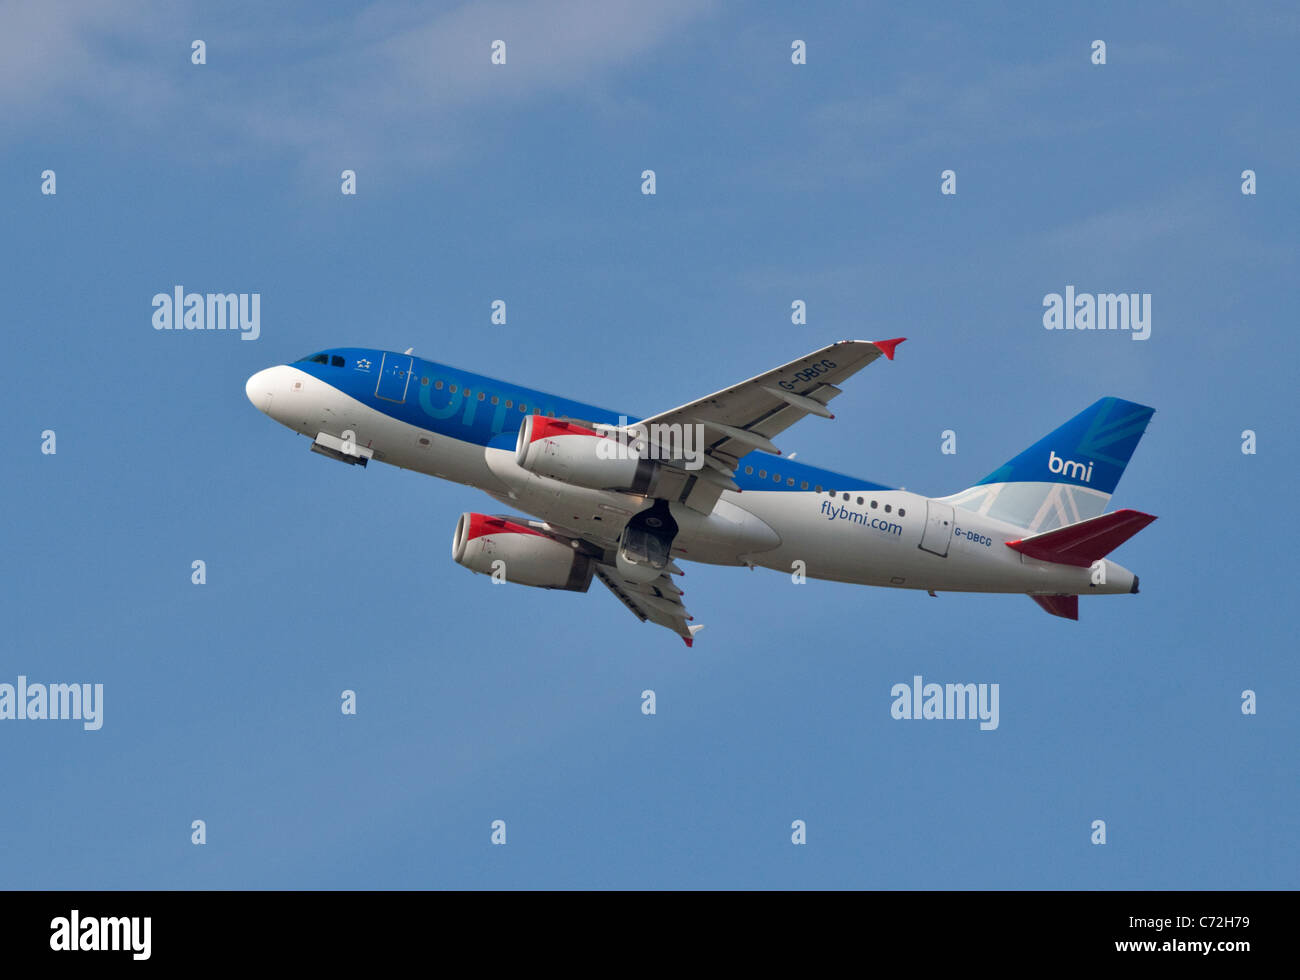 BMI British Midland Airbus A319, Gatwick Airport, West Sussex, England - Stock Image